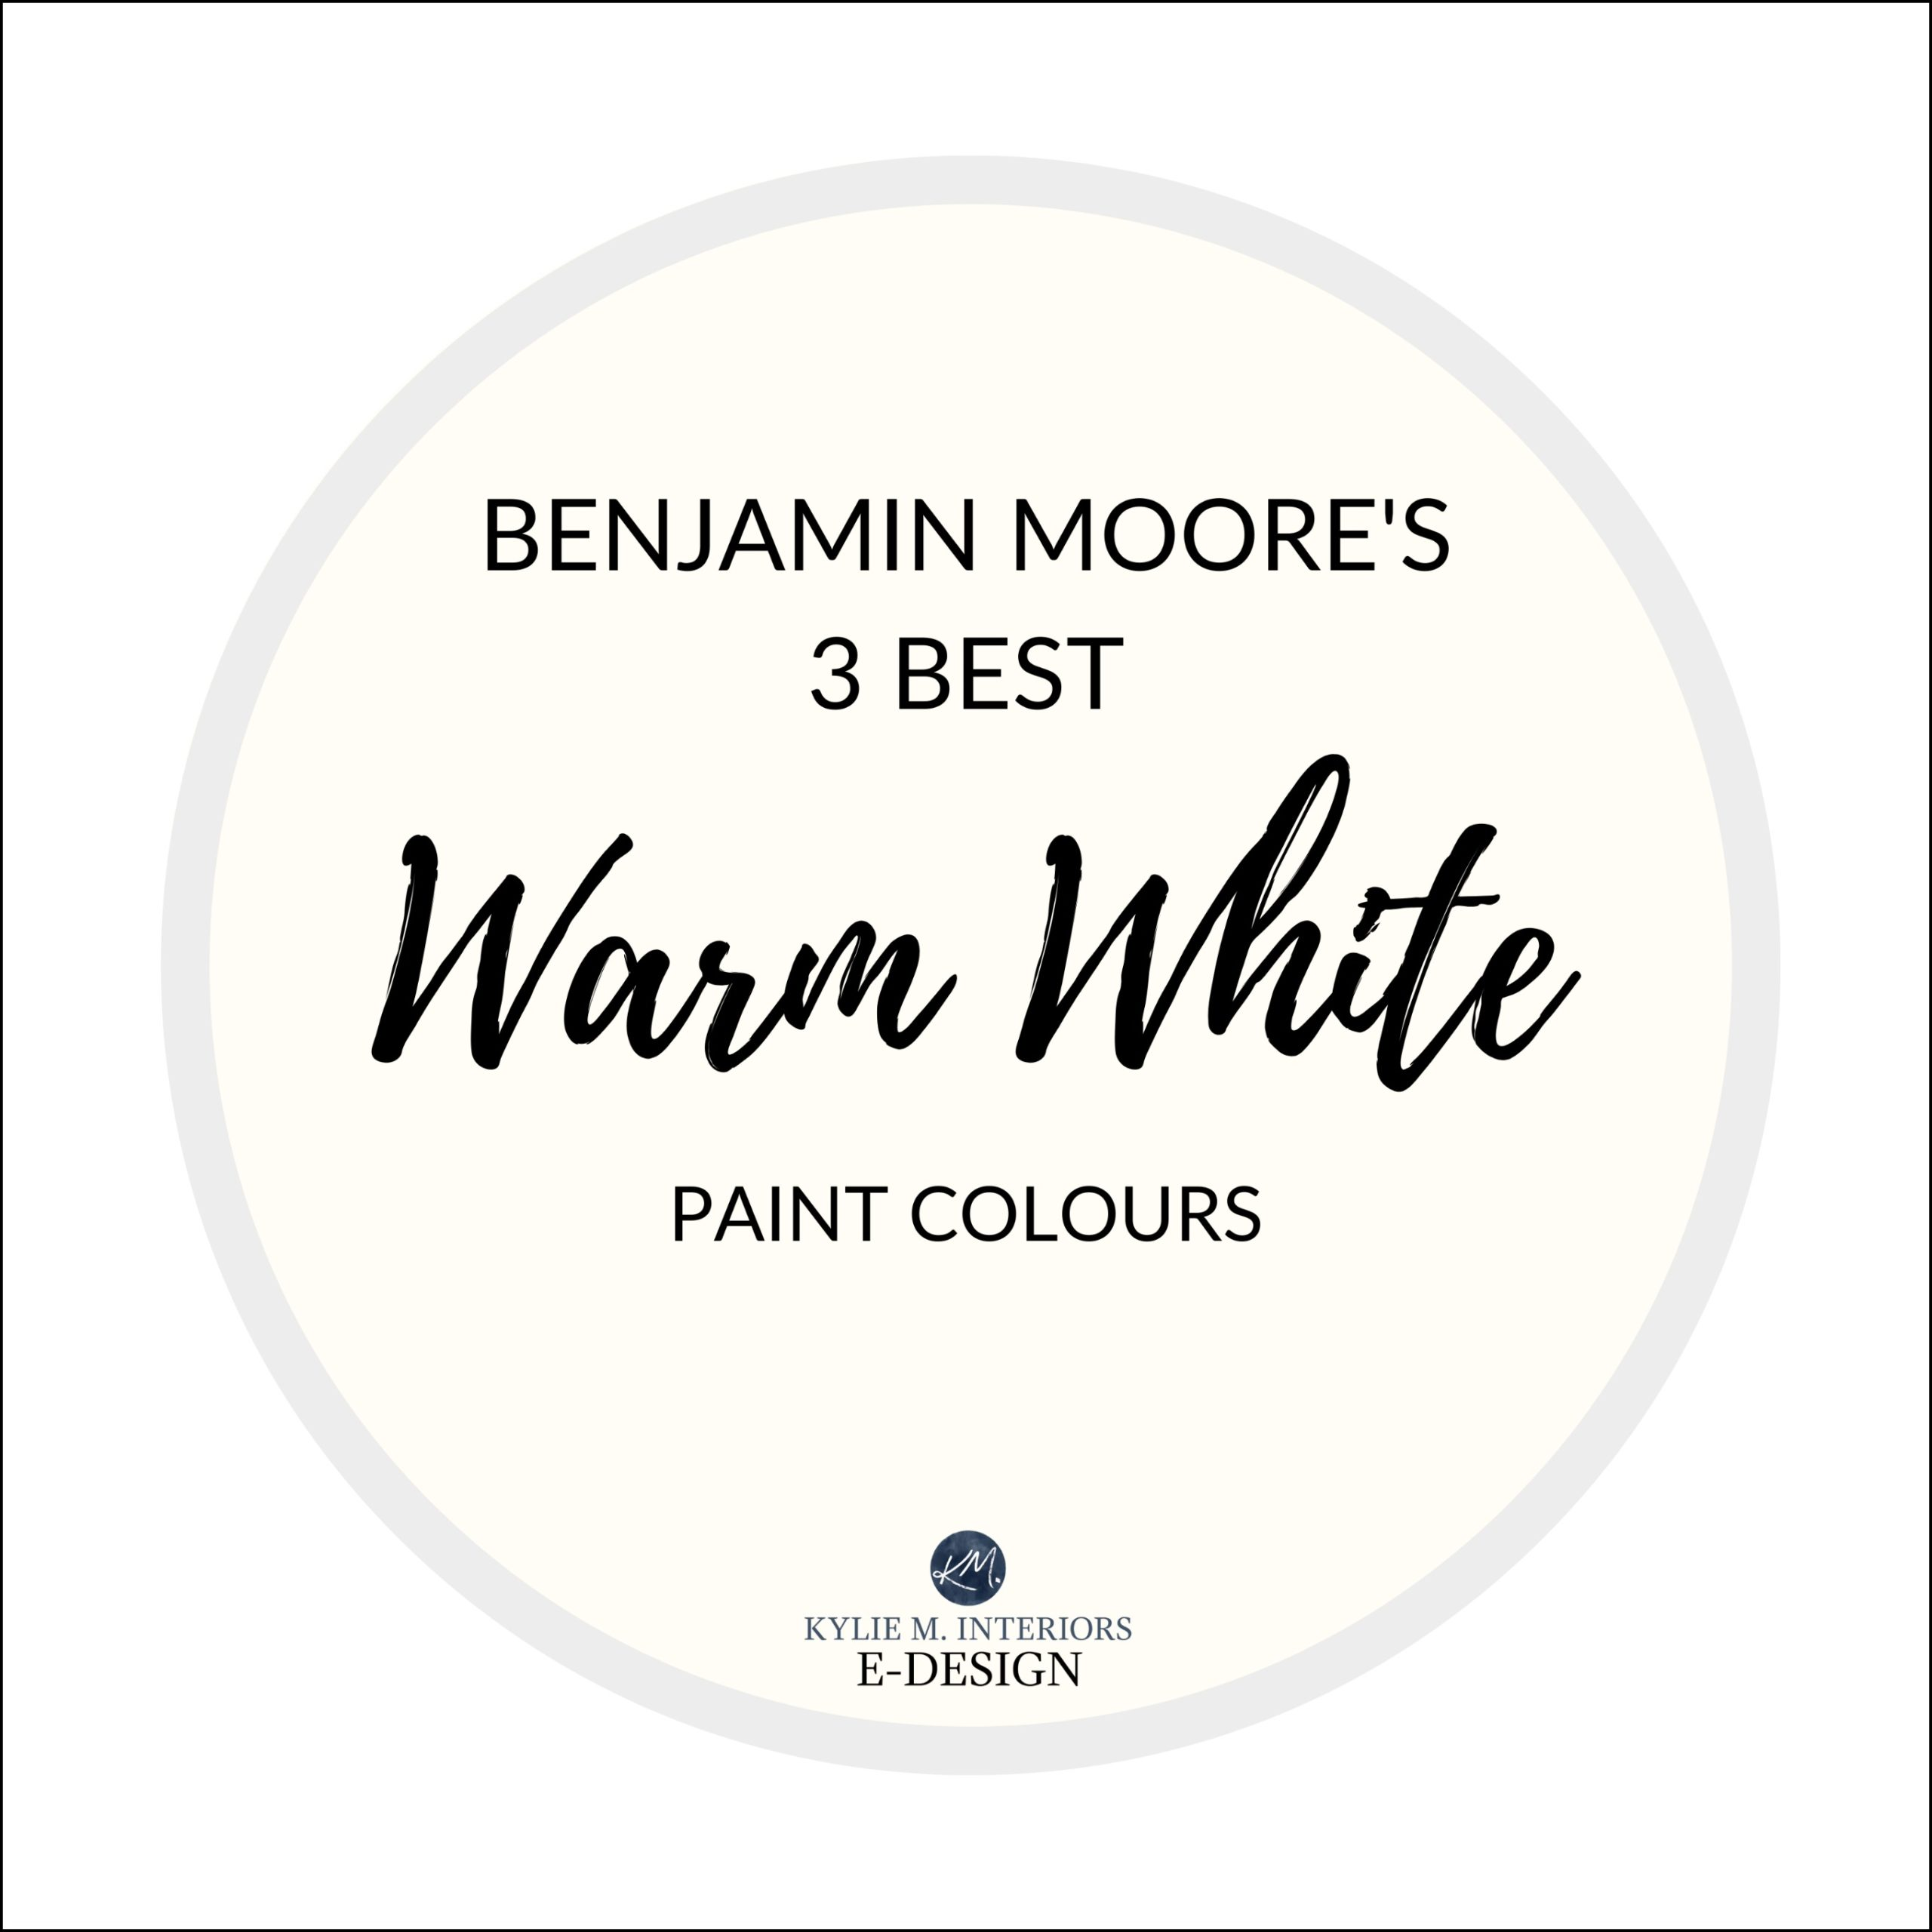 Paint Colour Review Benjamin Moore S 3 Best Warm White Paint Colours,Beginner House Of The Rising Sun Guitar Tab